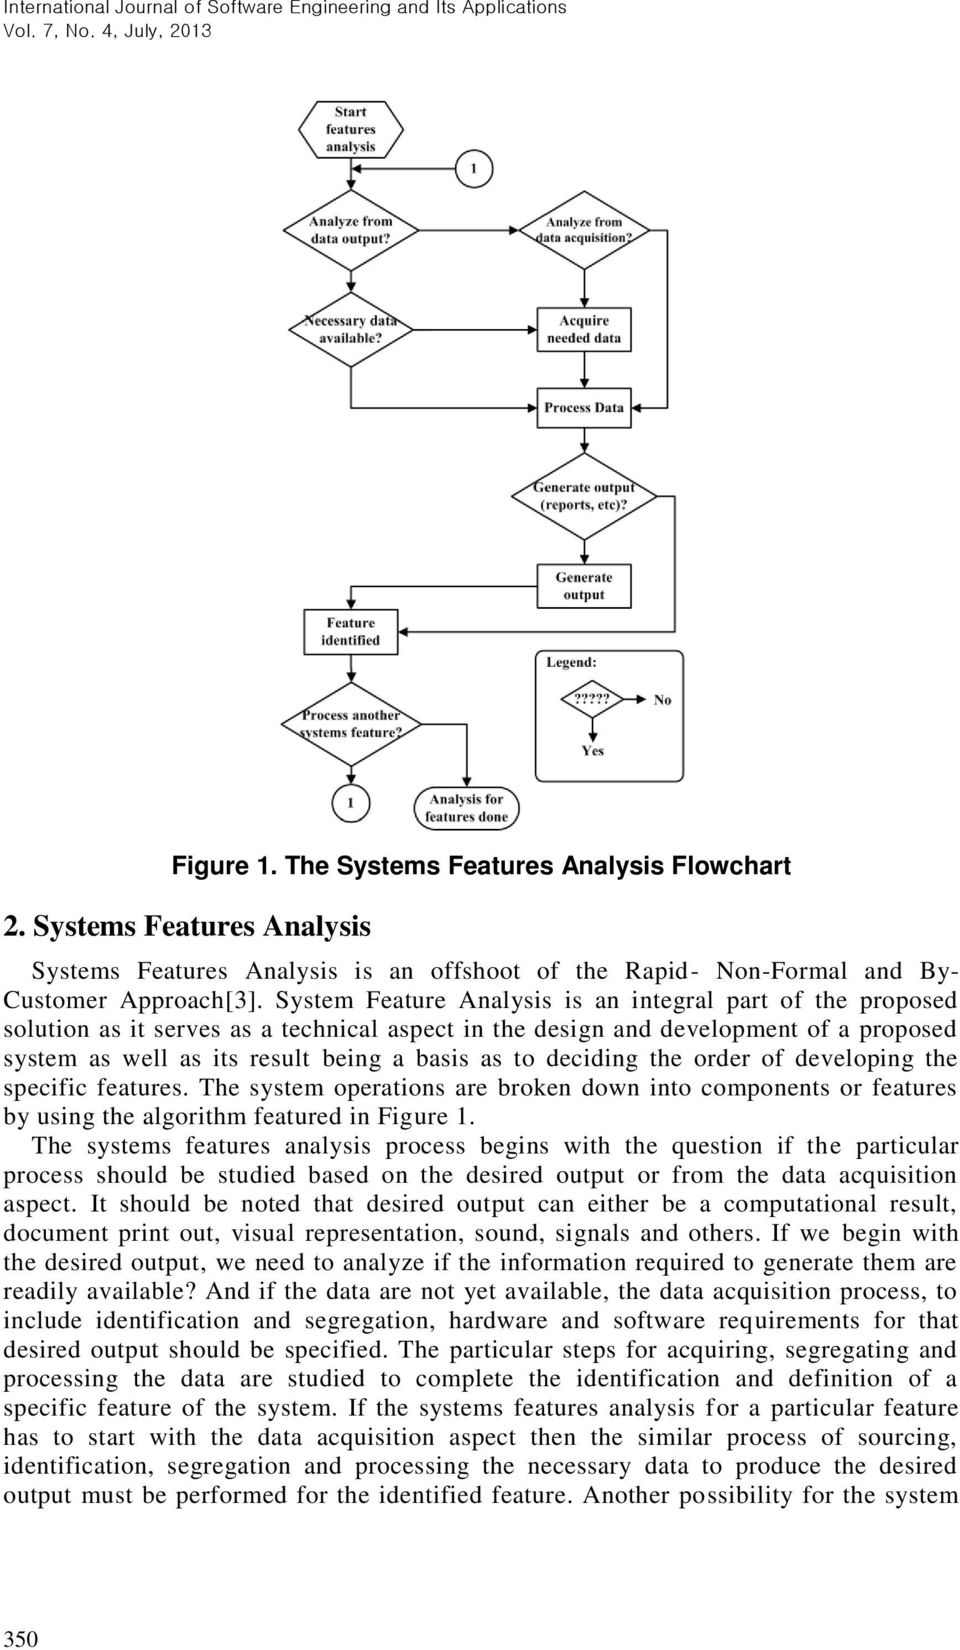 deciding the order of developing the specific features. The system operations are broken down into components or features by using the algorithm featured in Figure 1.